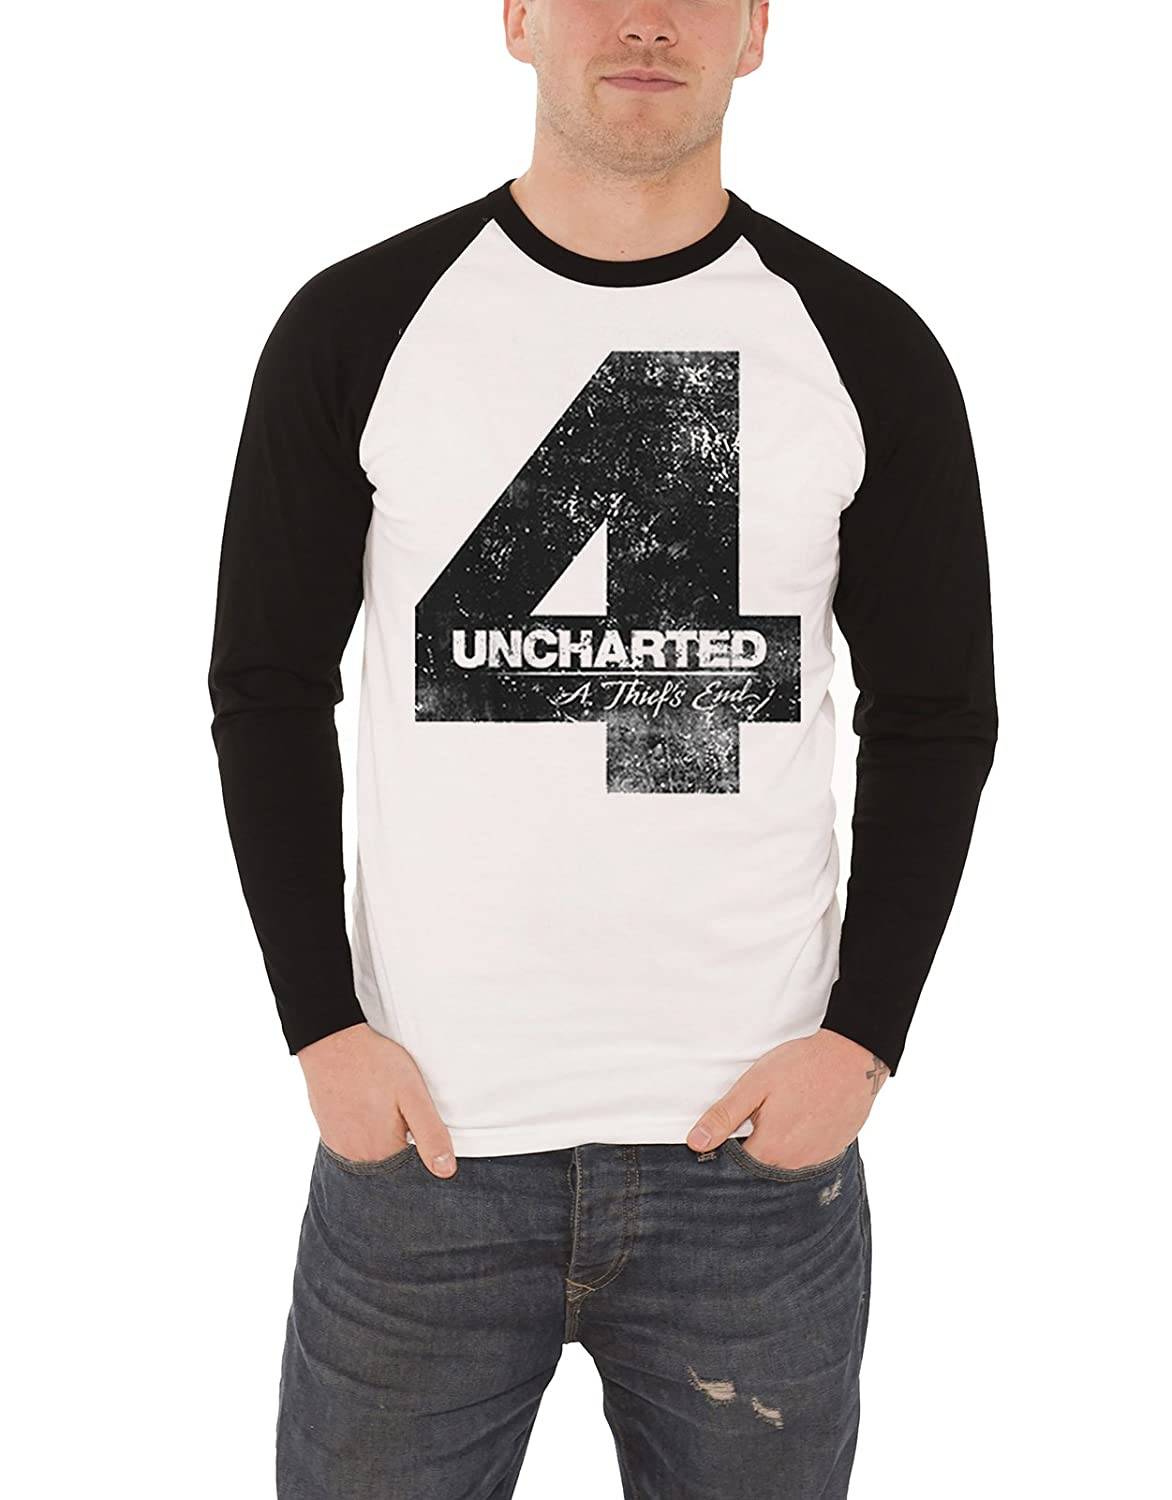 Uncharted 4 Shirt Baseball Distressed Logo Ufficiale Uomo Nuovo Bianca Long